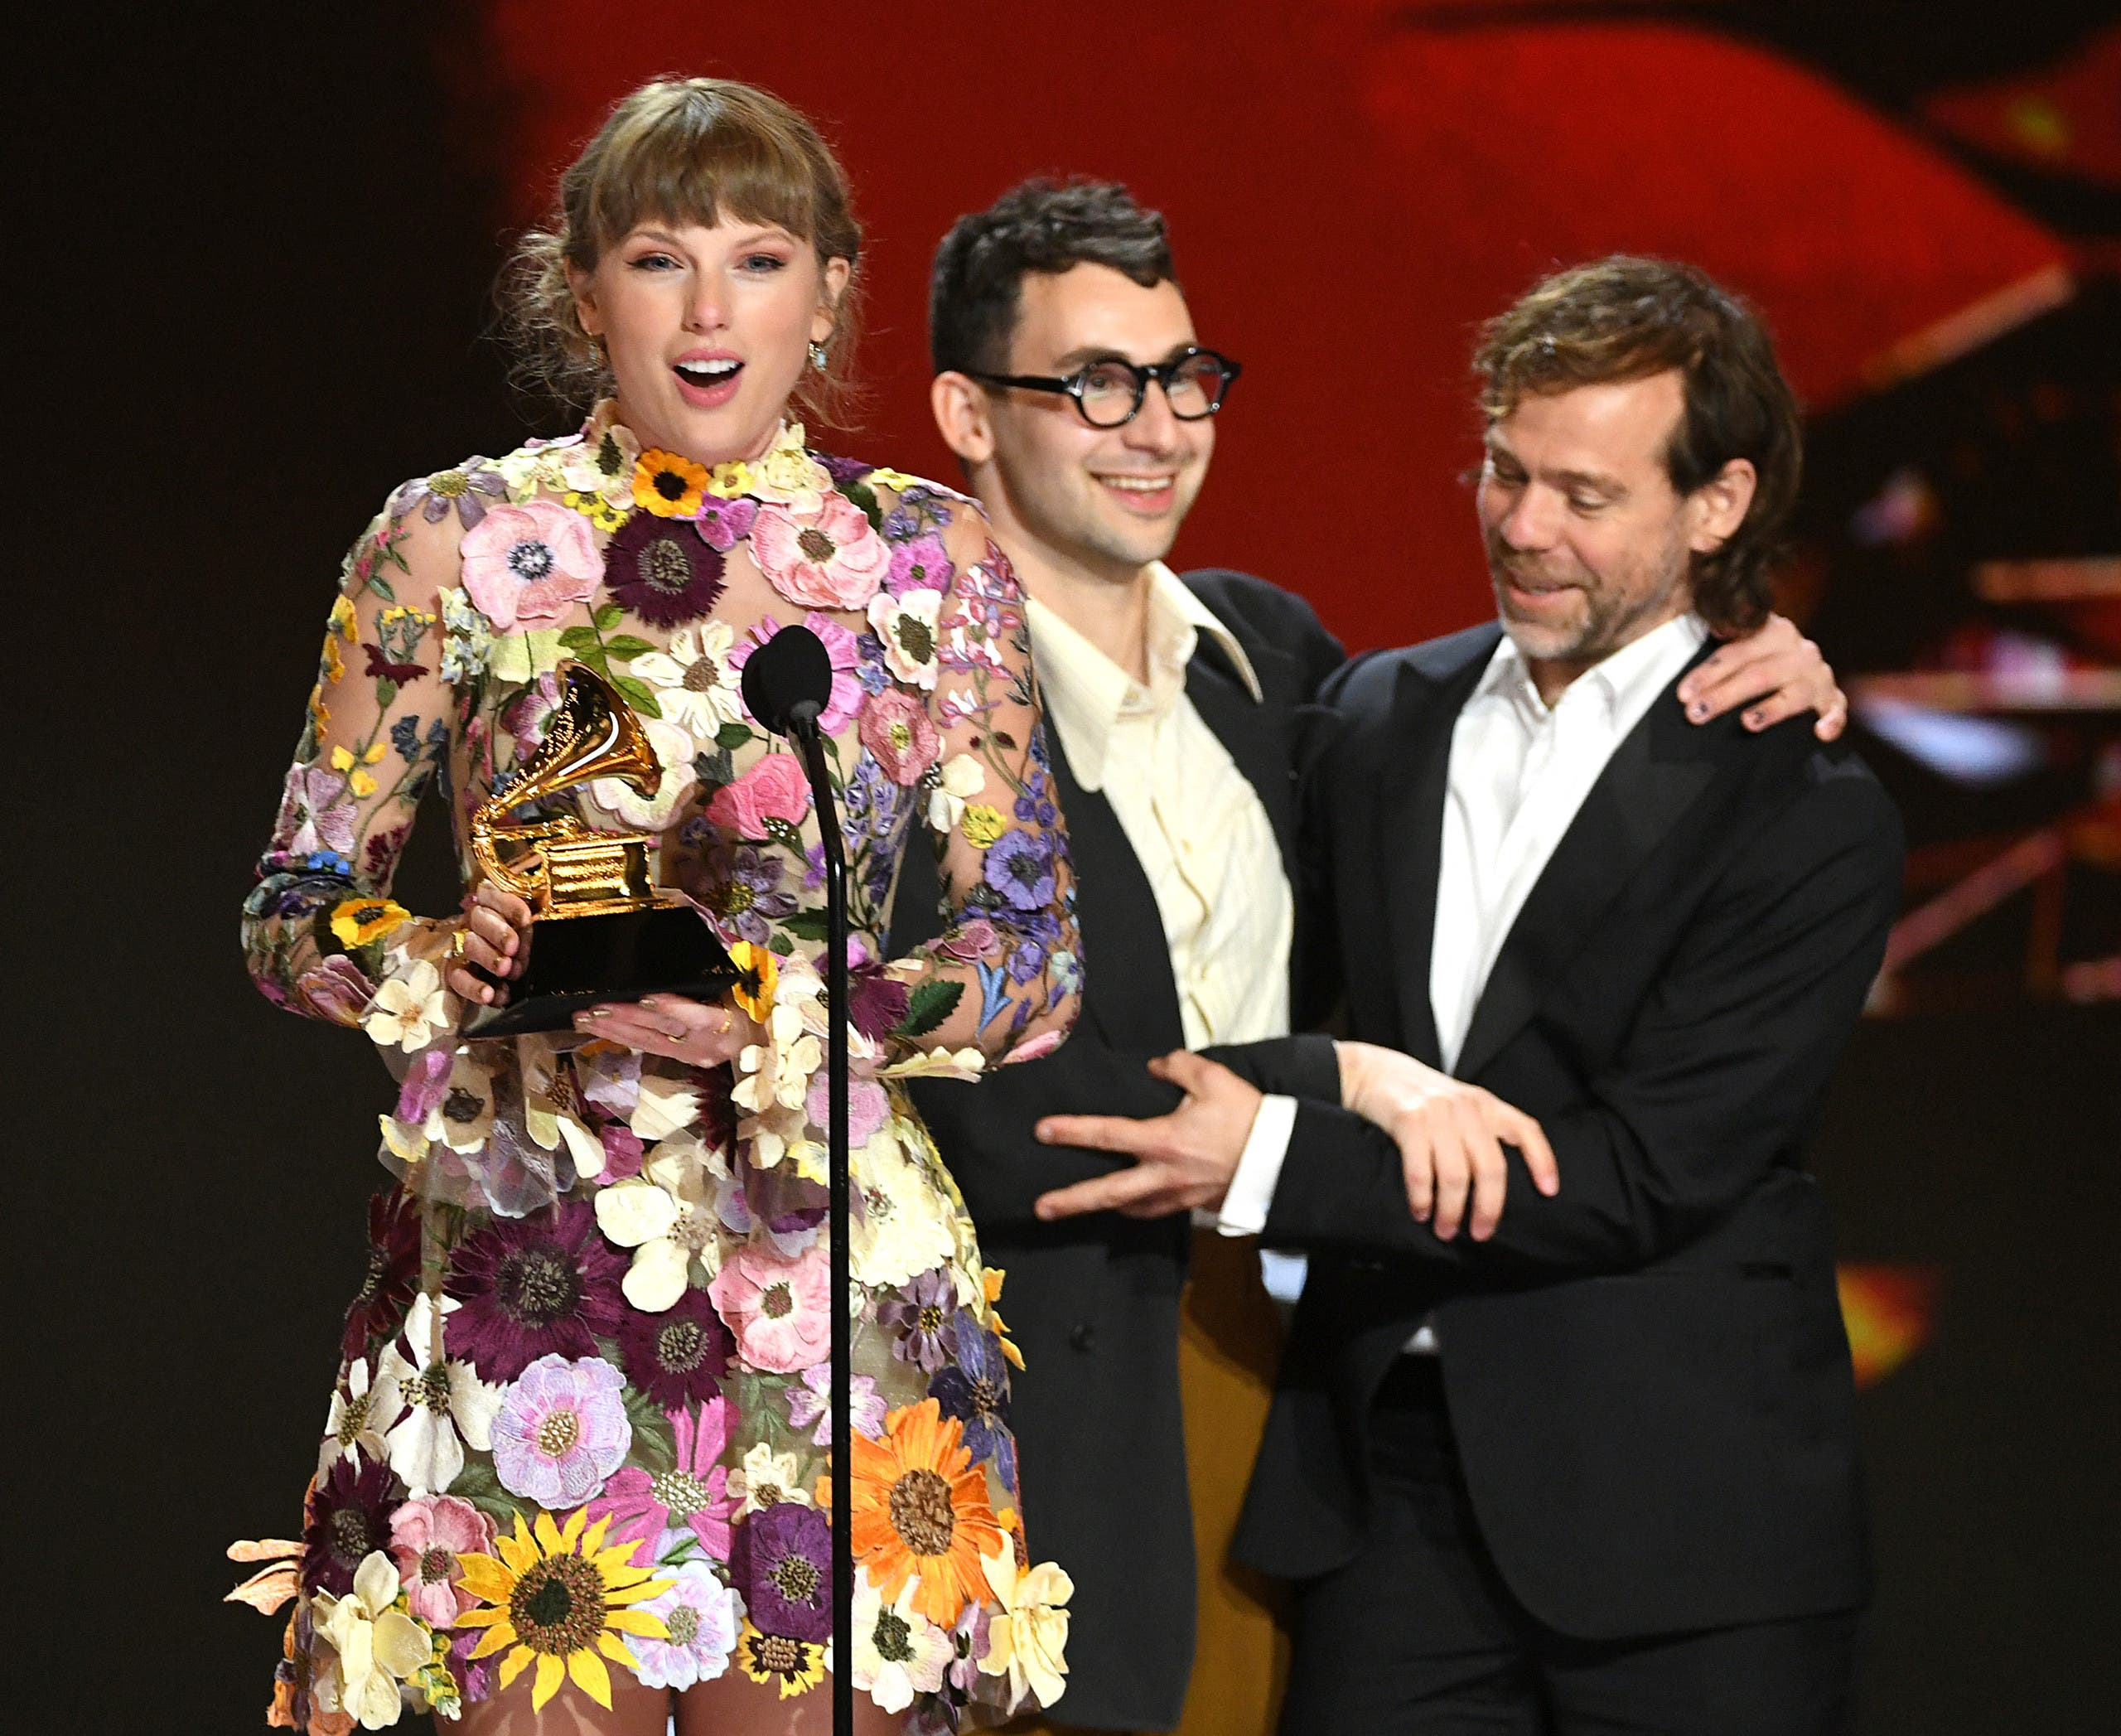 Taylor Swift, Jack Antonoff, and Aaron Dessner accept the Album of the Year award for 'Folklore' onstage during the 63rd Annual GRAMMY Awards at Los Angeles Convention Center on March 14, 2021. (File photo: AFP)